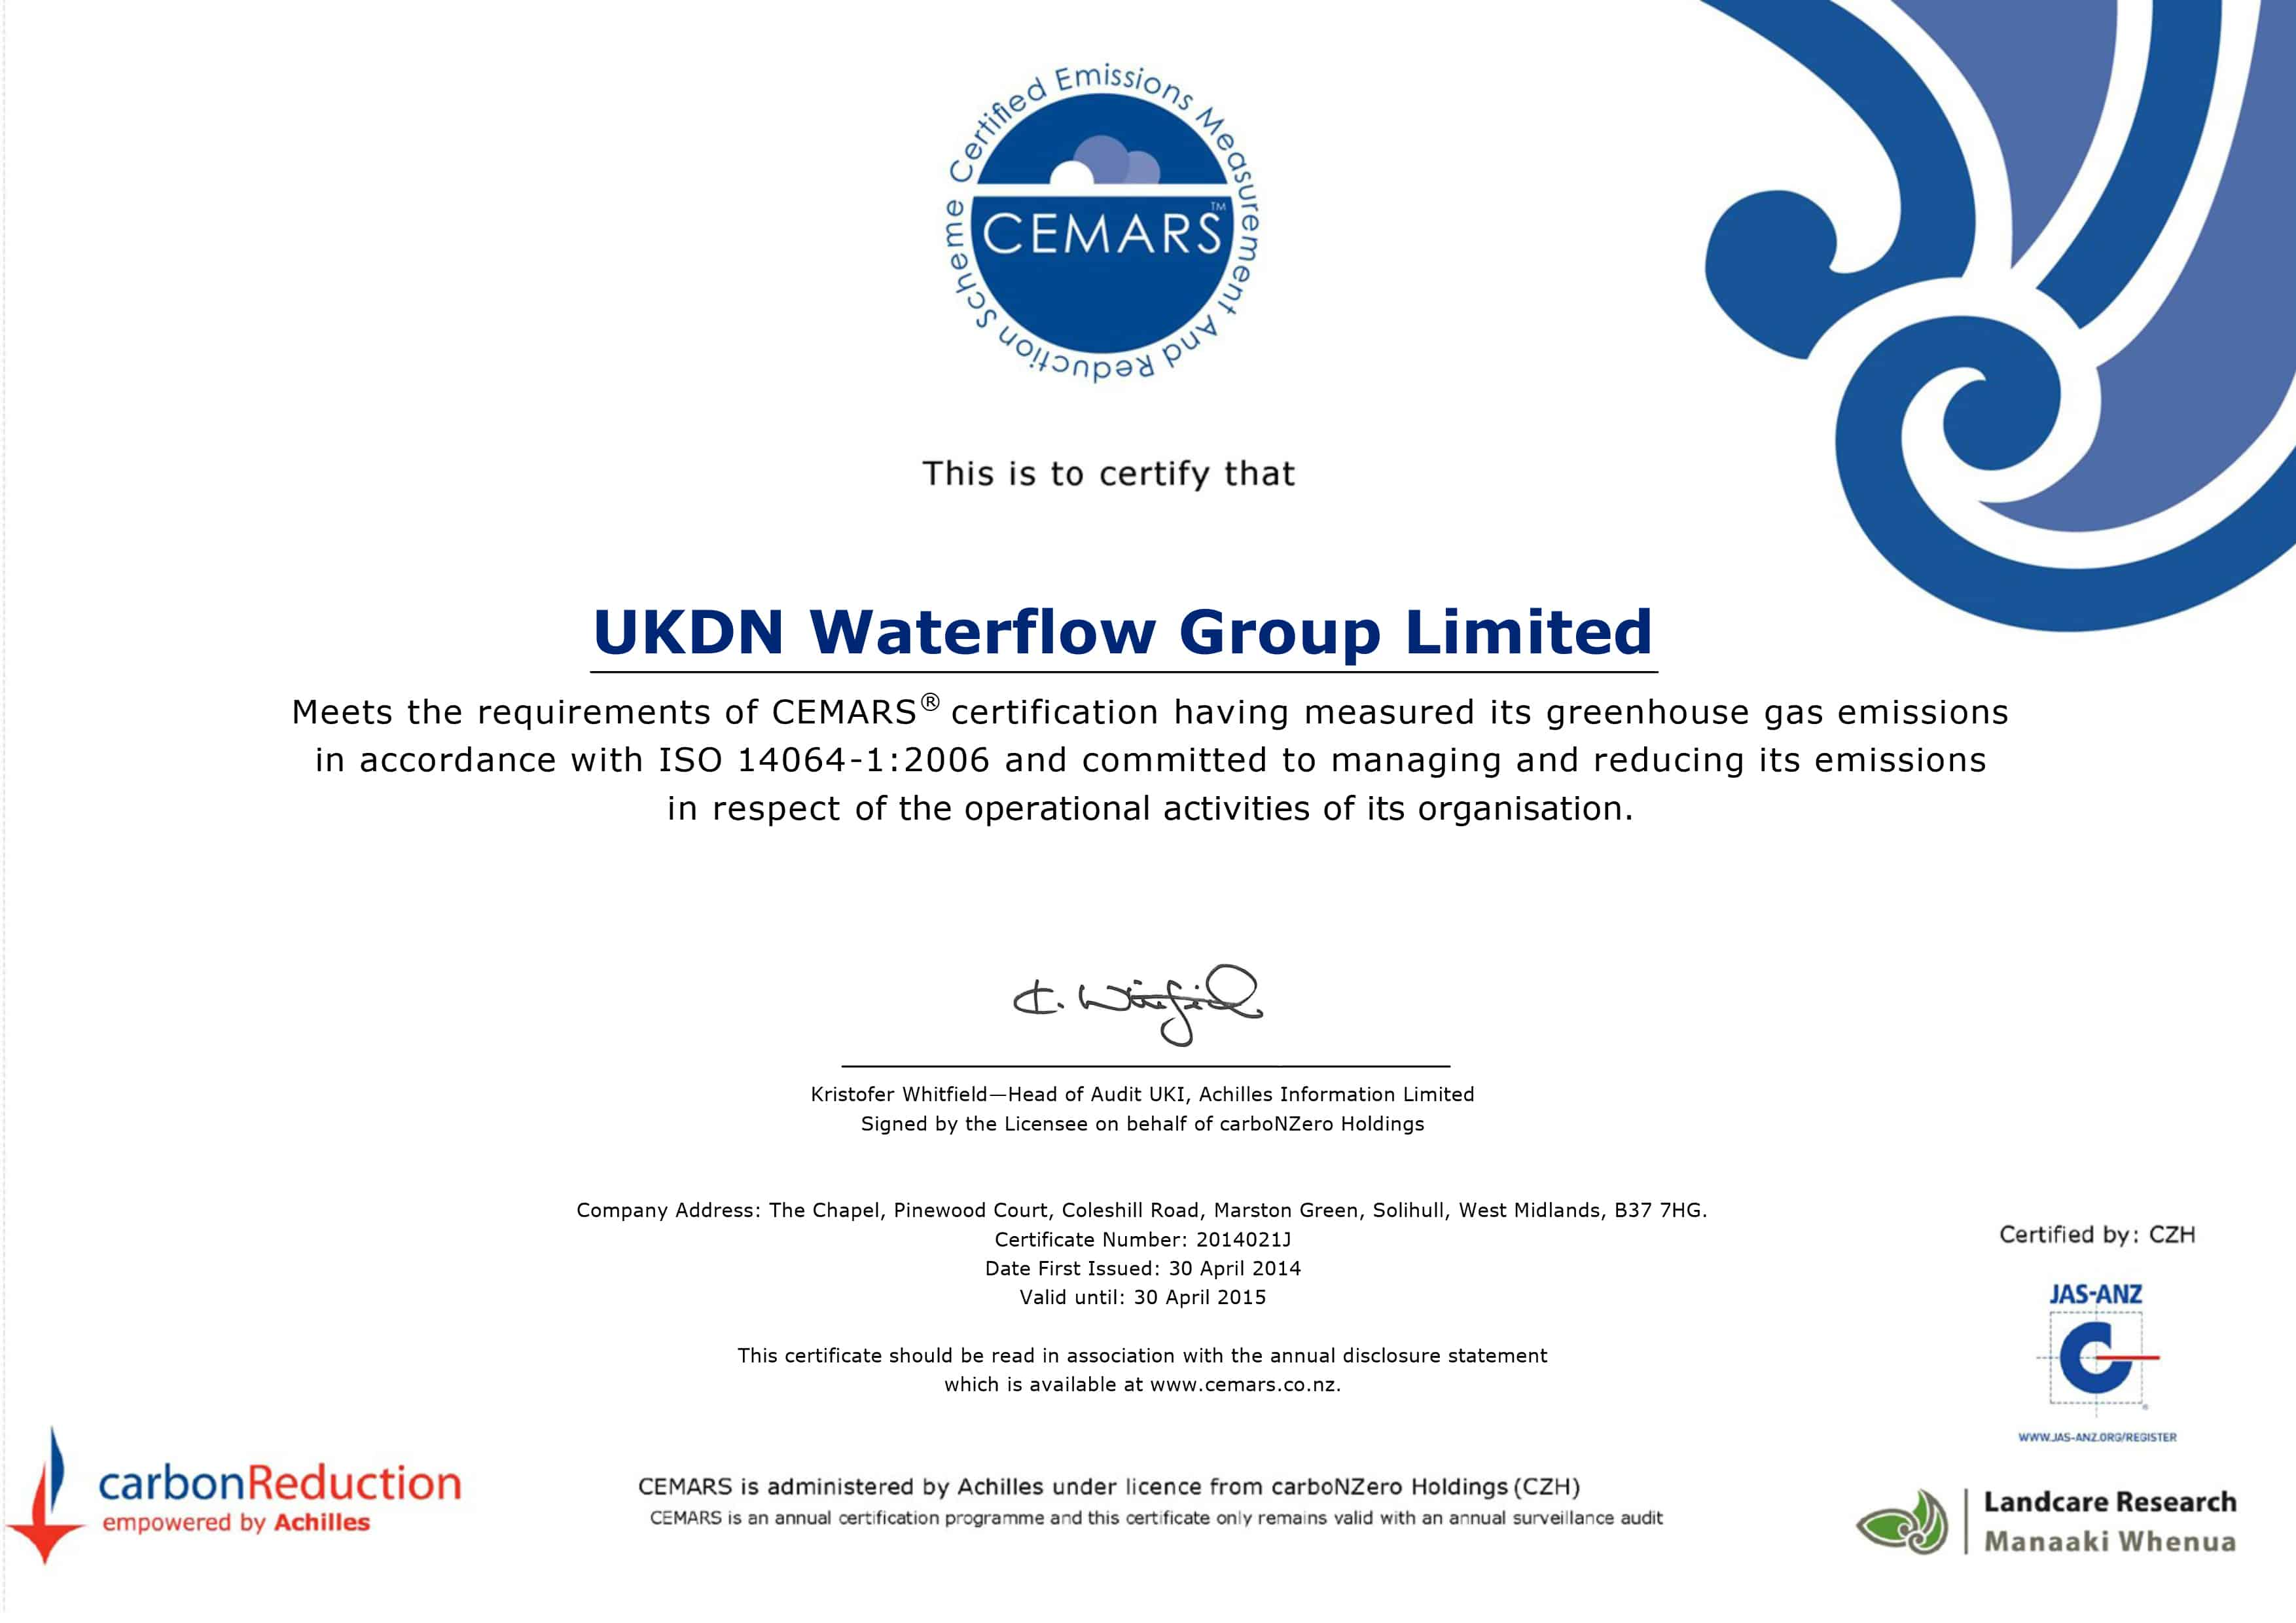 Cemars accreditation demonstrates carbon leadership ukdn waterflow cemars accreditation ukdn waterflow achilles cemars certificate template xflitez Image collections